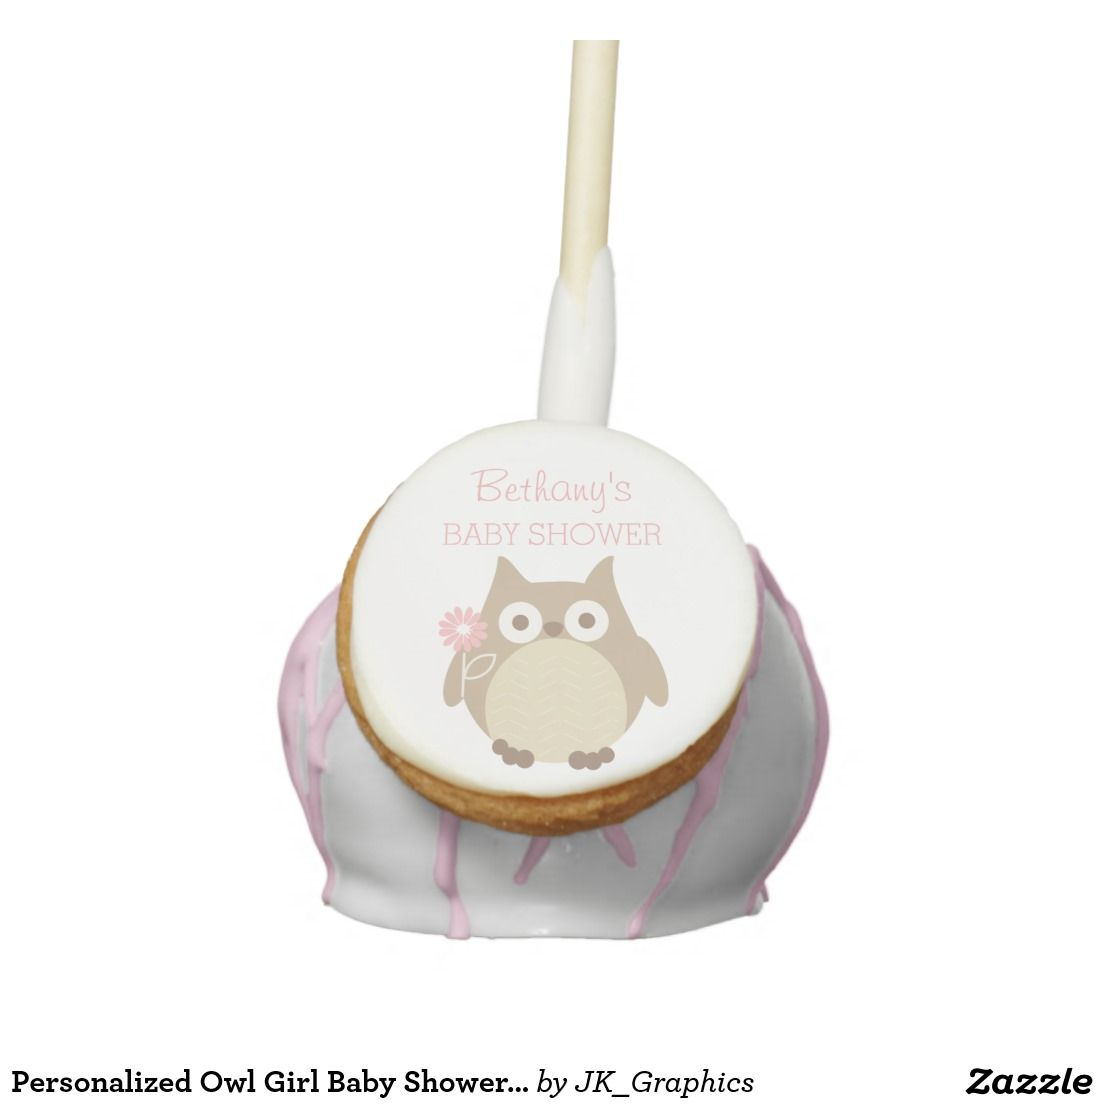 Personalized Owl Girl Baby Shower Favors Cake Pops | Baby Shower ...